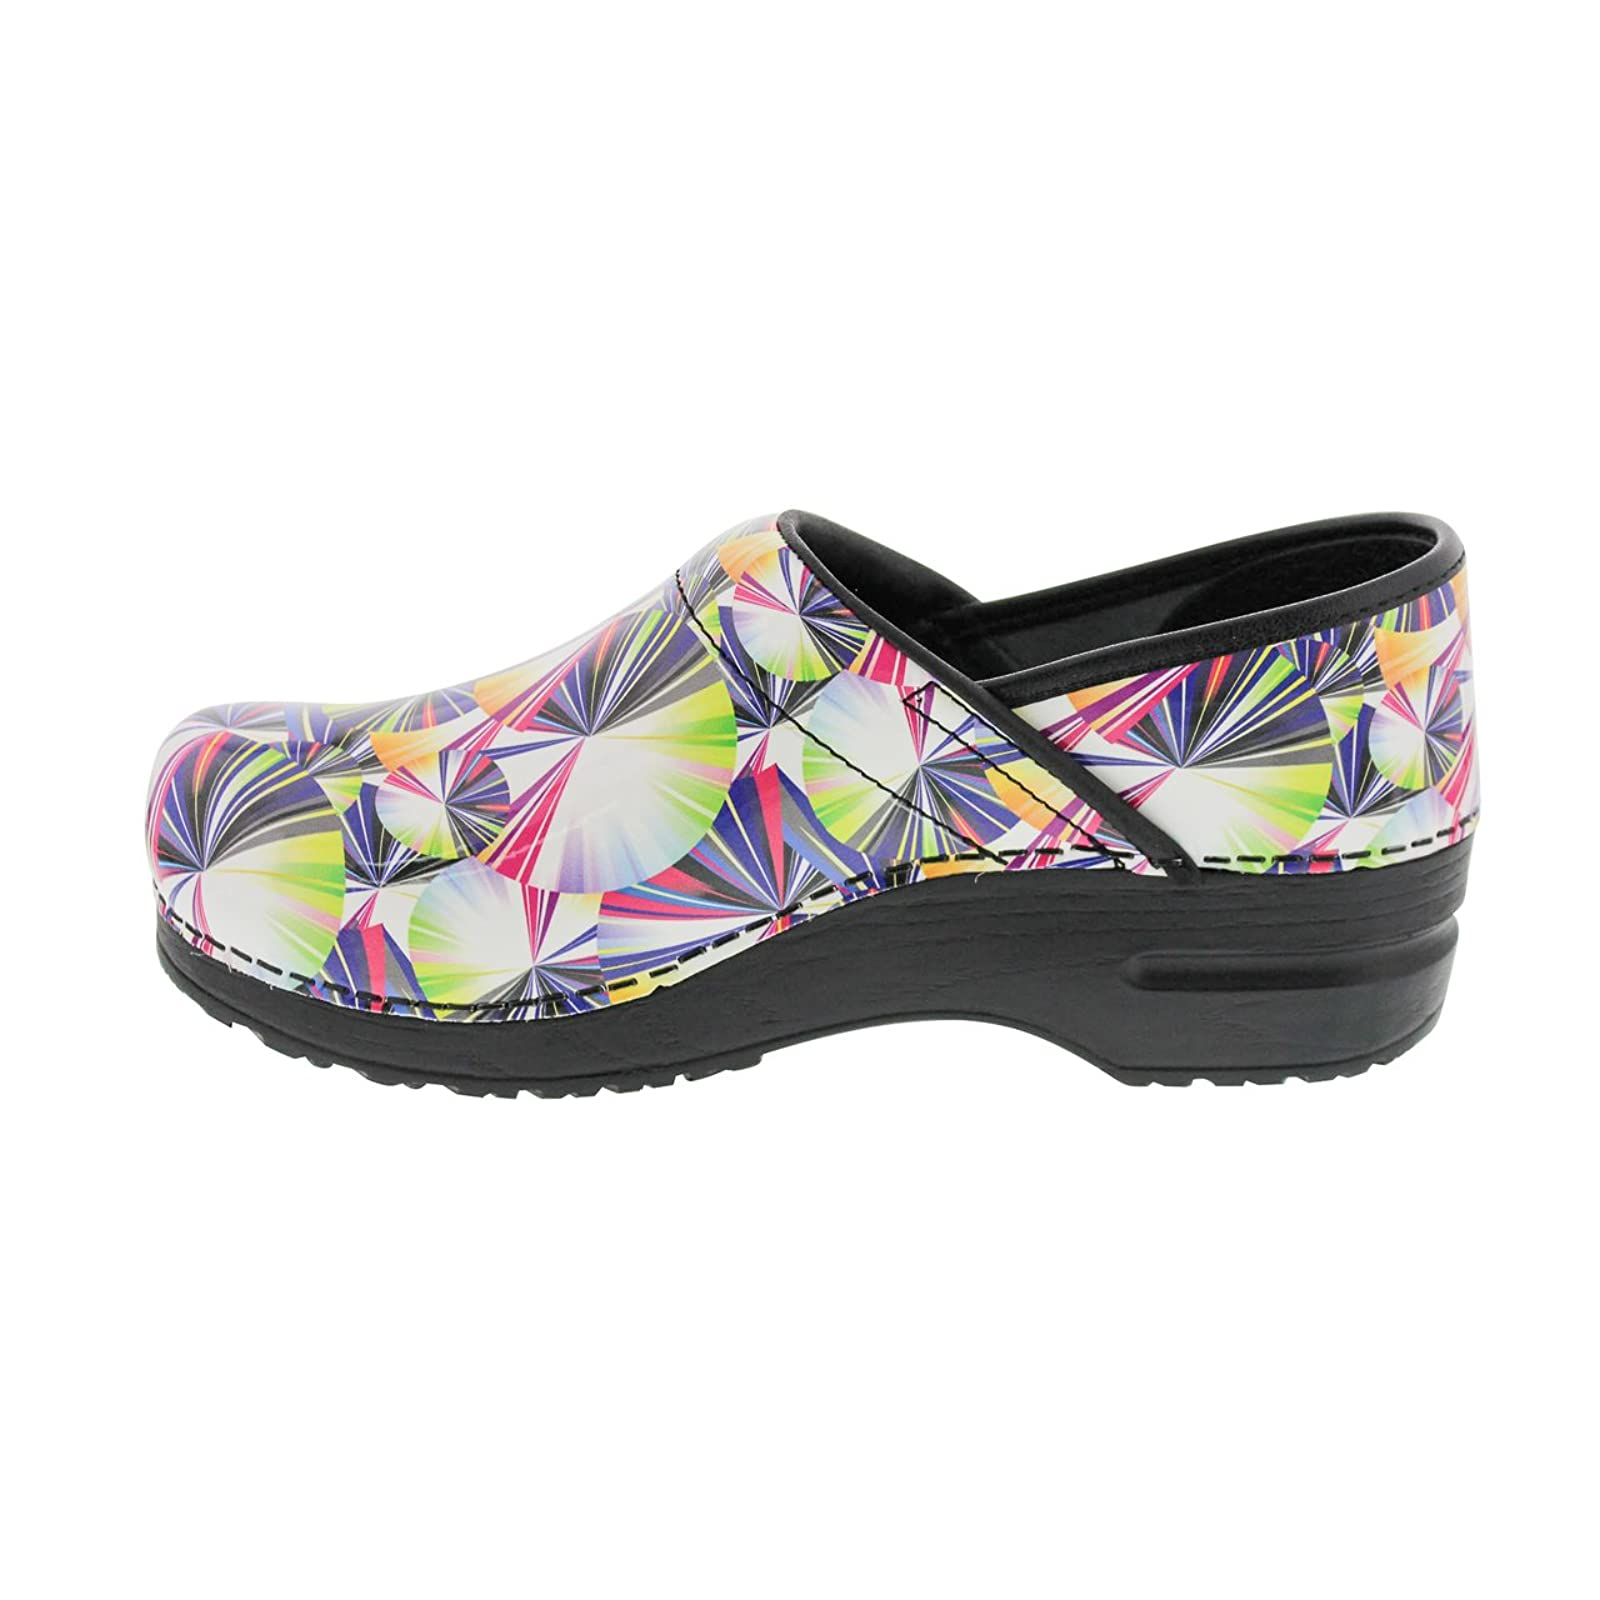 Sanita Women's Original Pro. Geo Clog 459156 Multi - 3